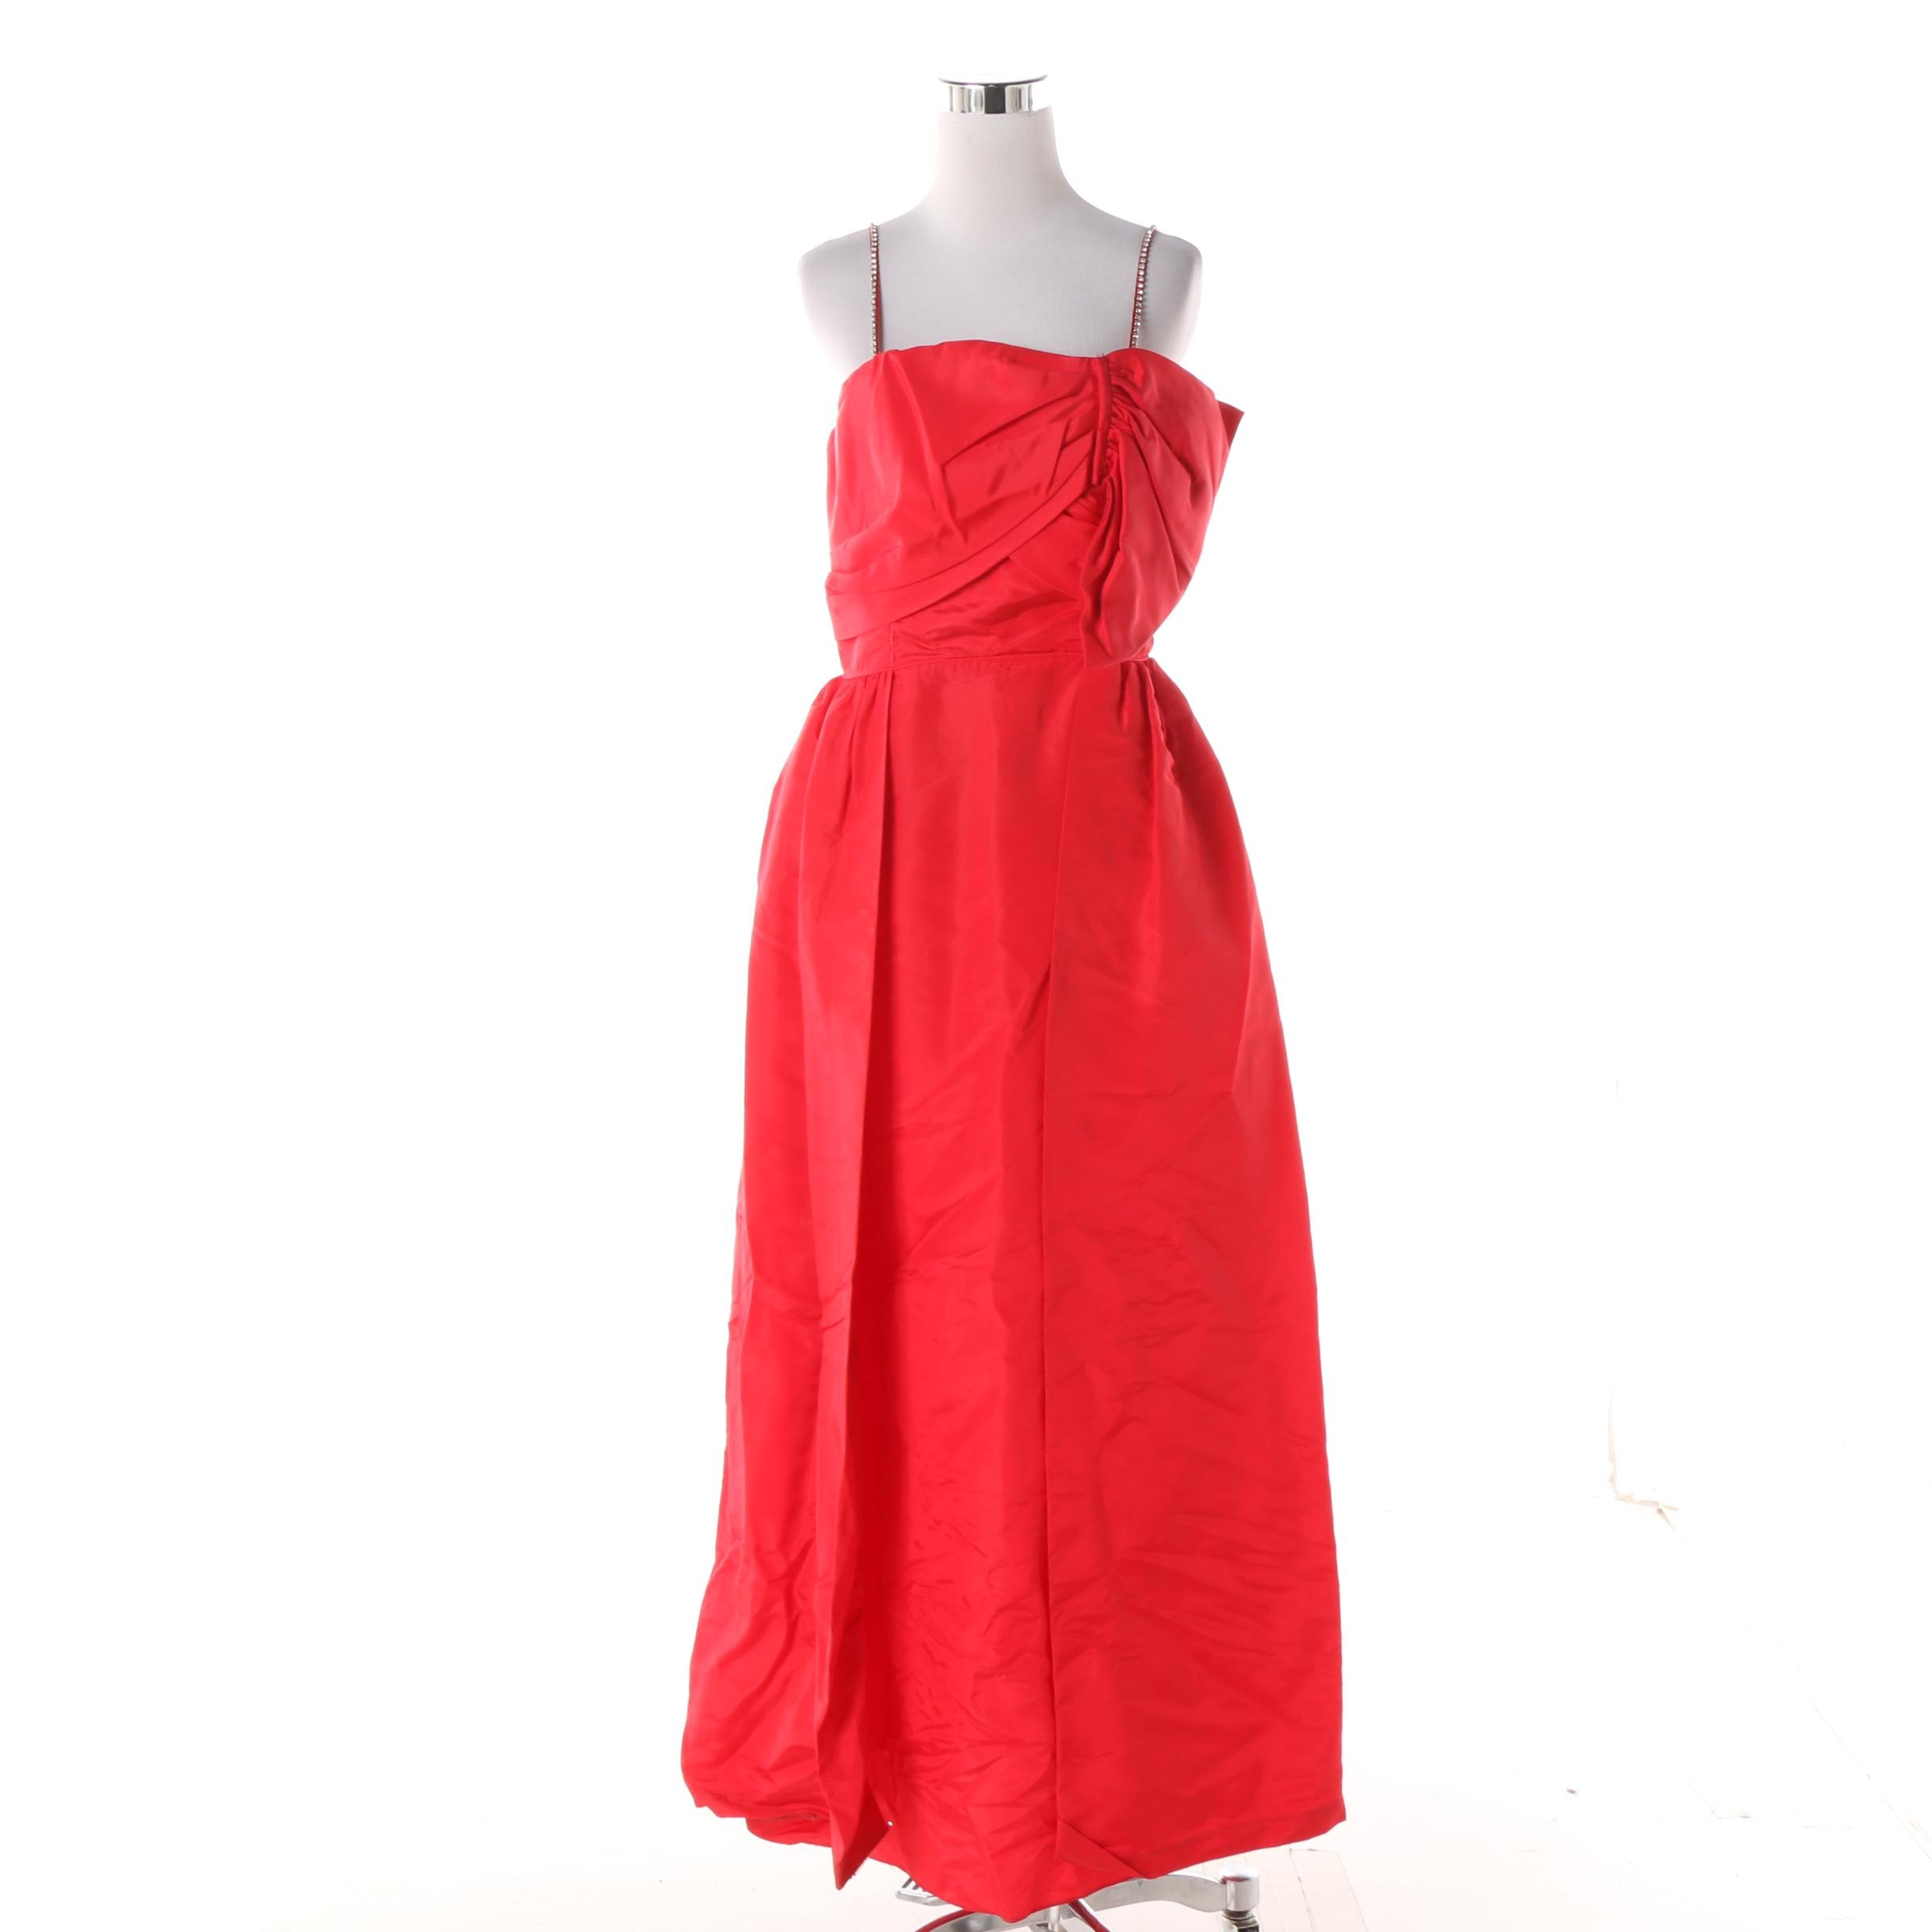 Vintage Red Ruched Sleeveless Evening Gown with Rhinestone Straps and Bow Detail